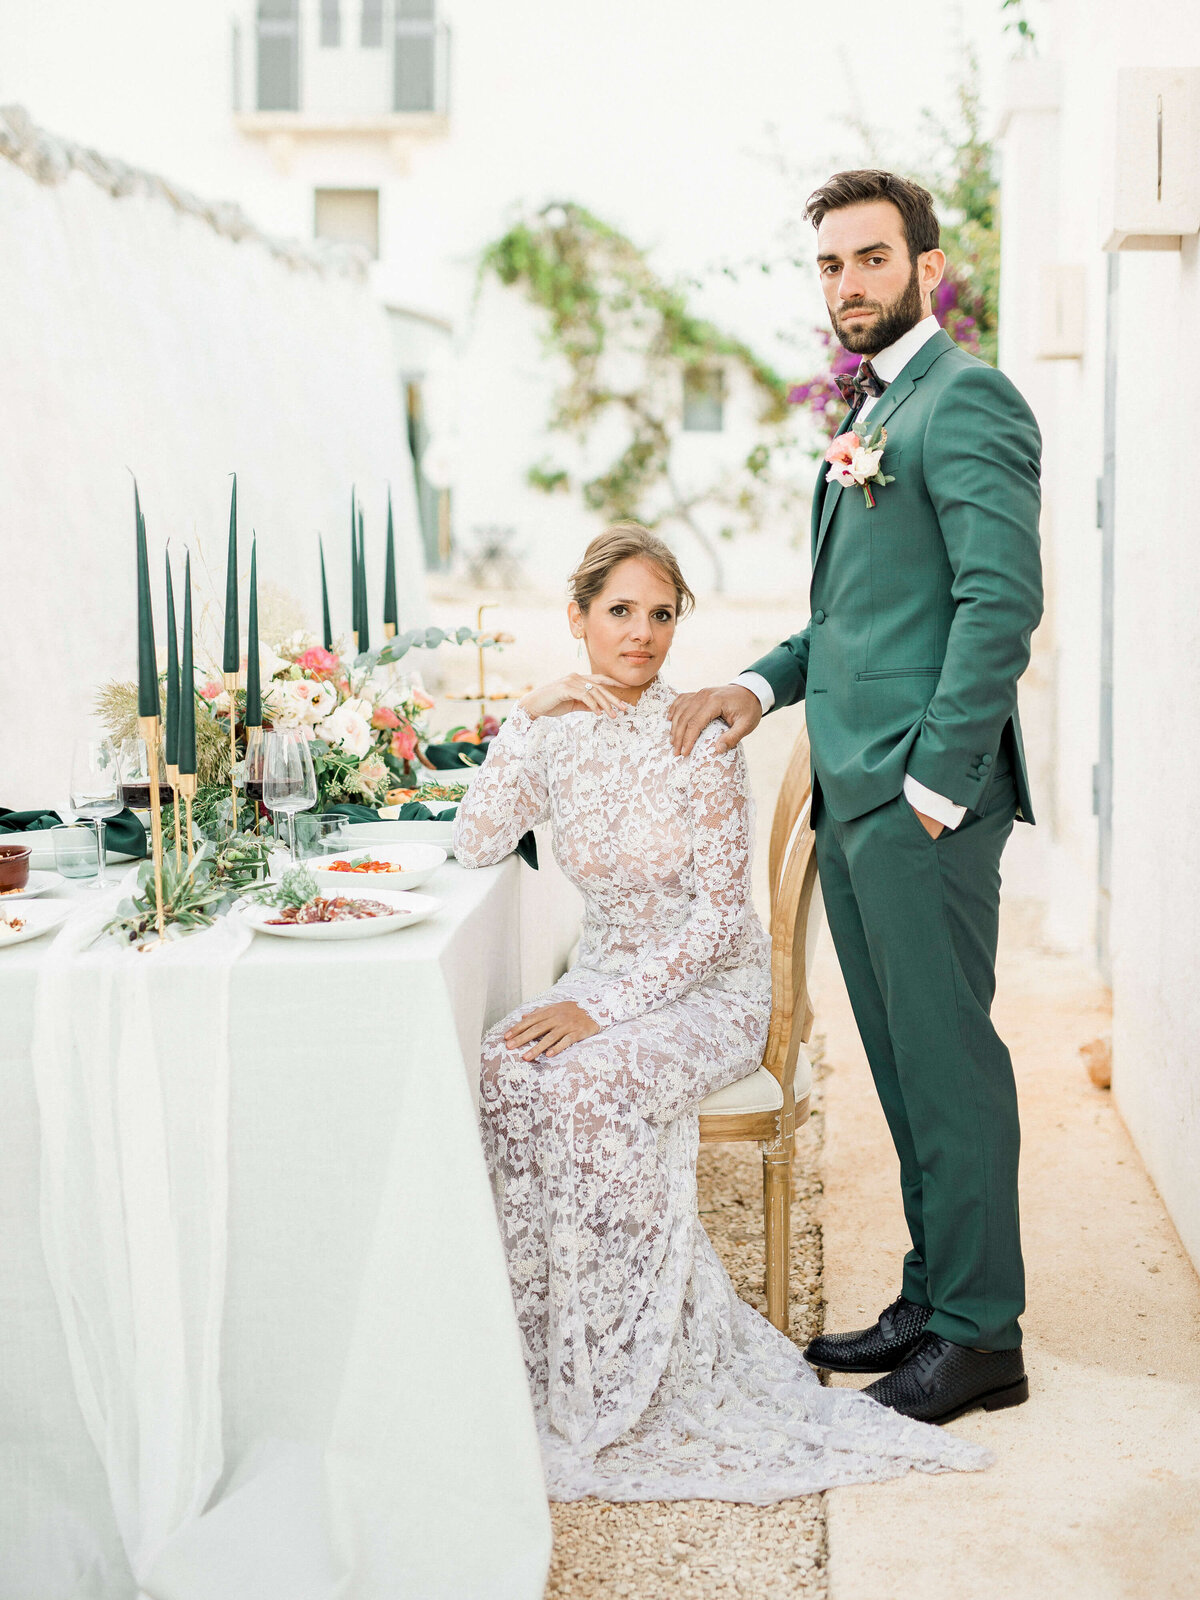 Styled Shoot - Honeymoon - Masseria - Puglia - Italy 0250